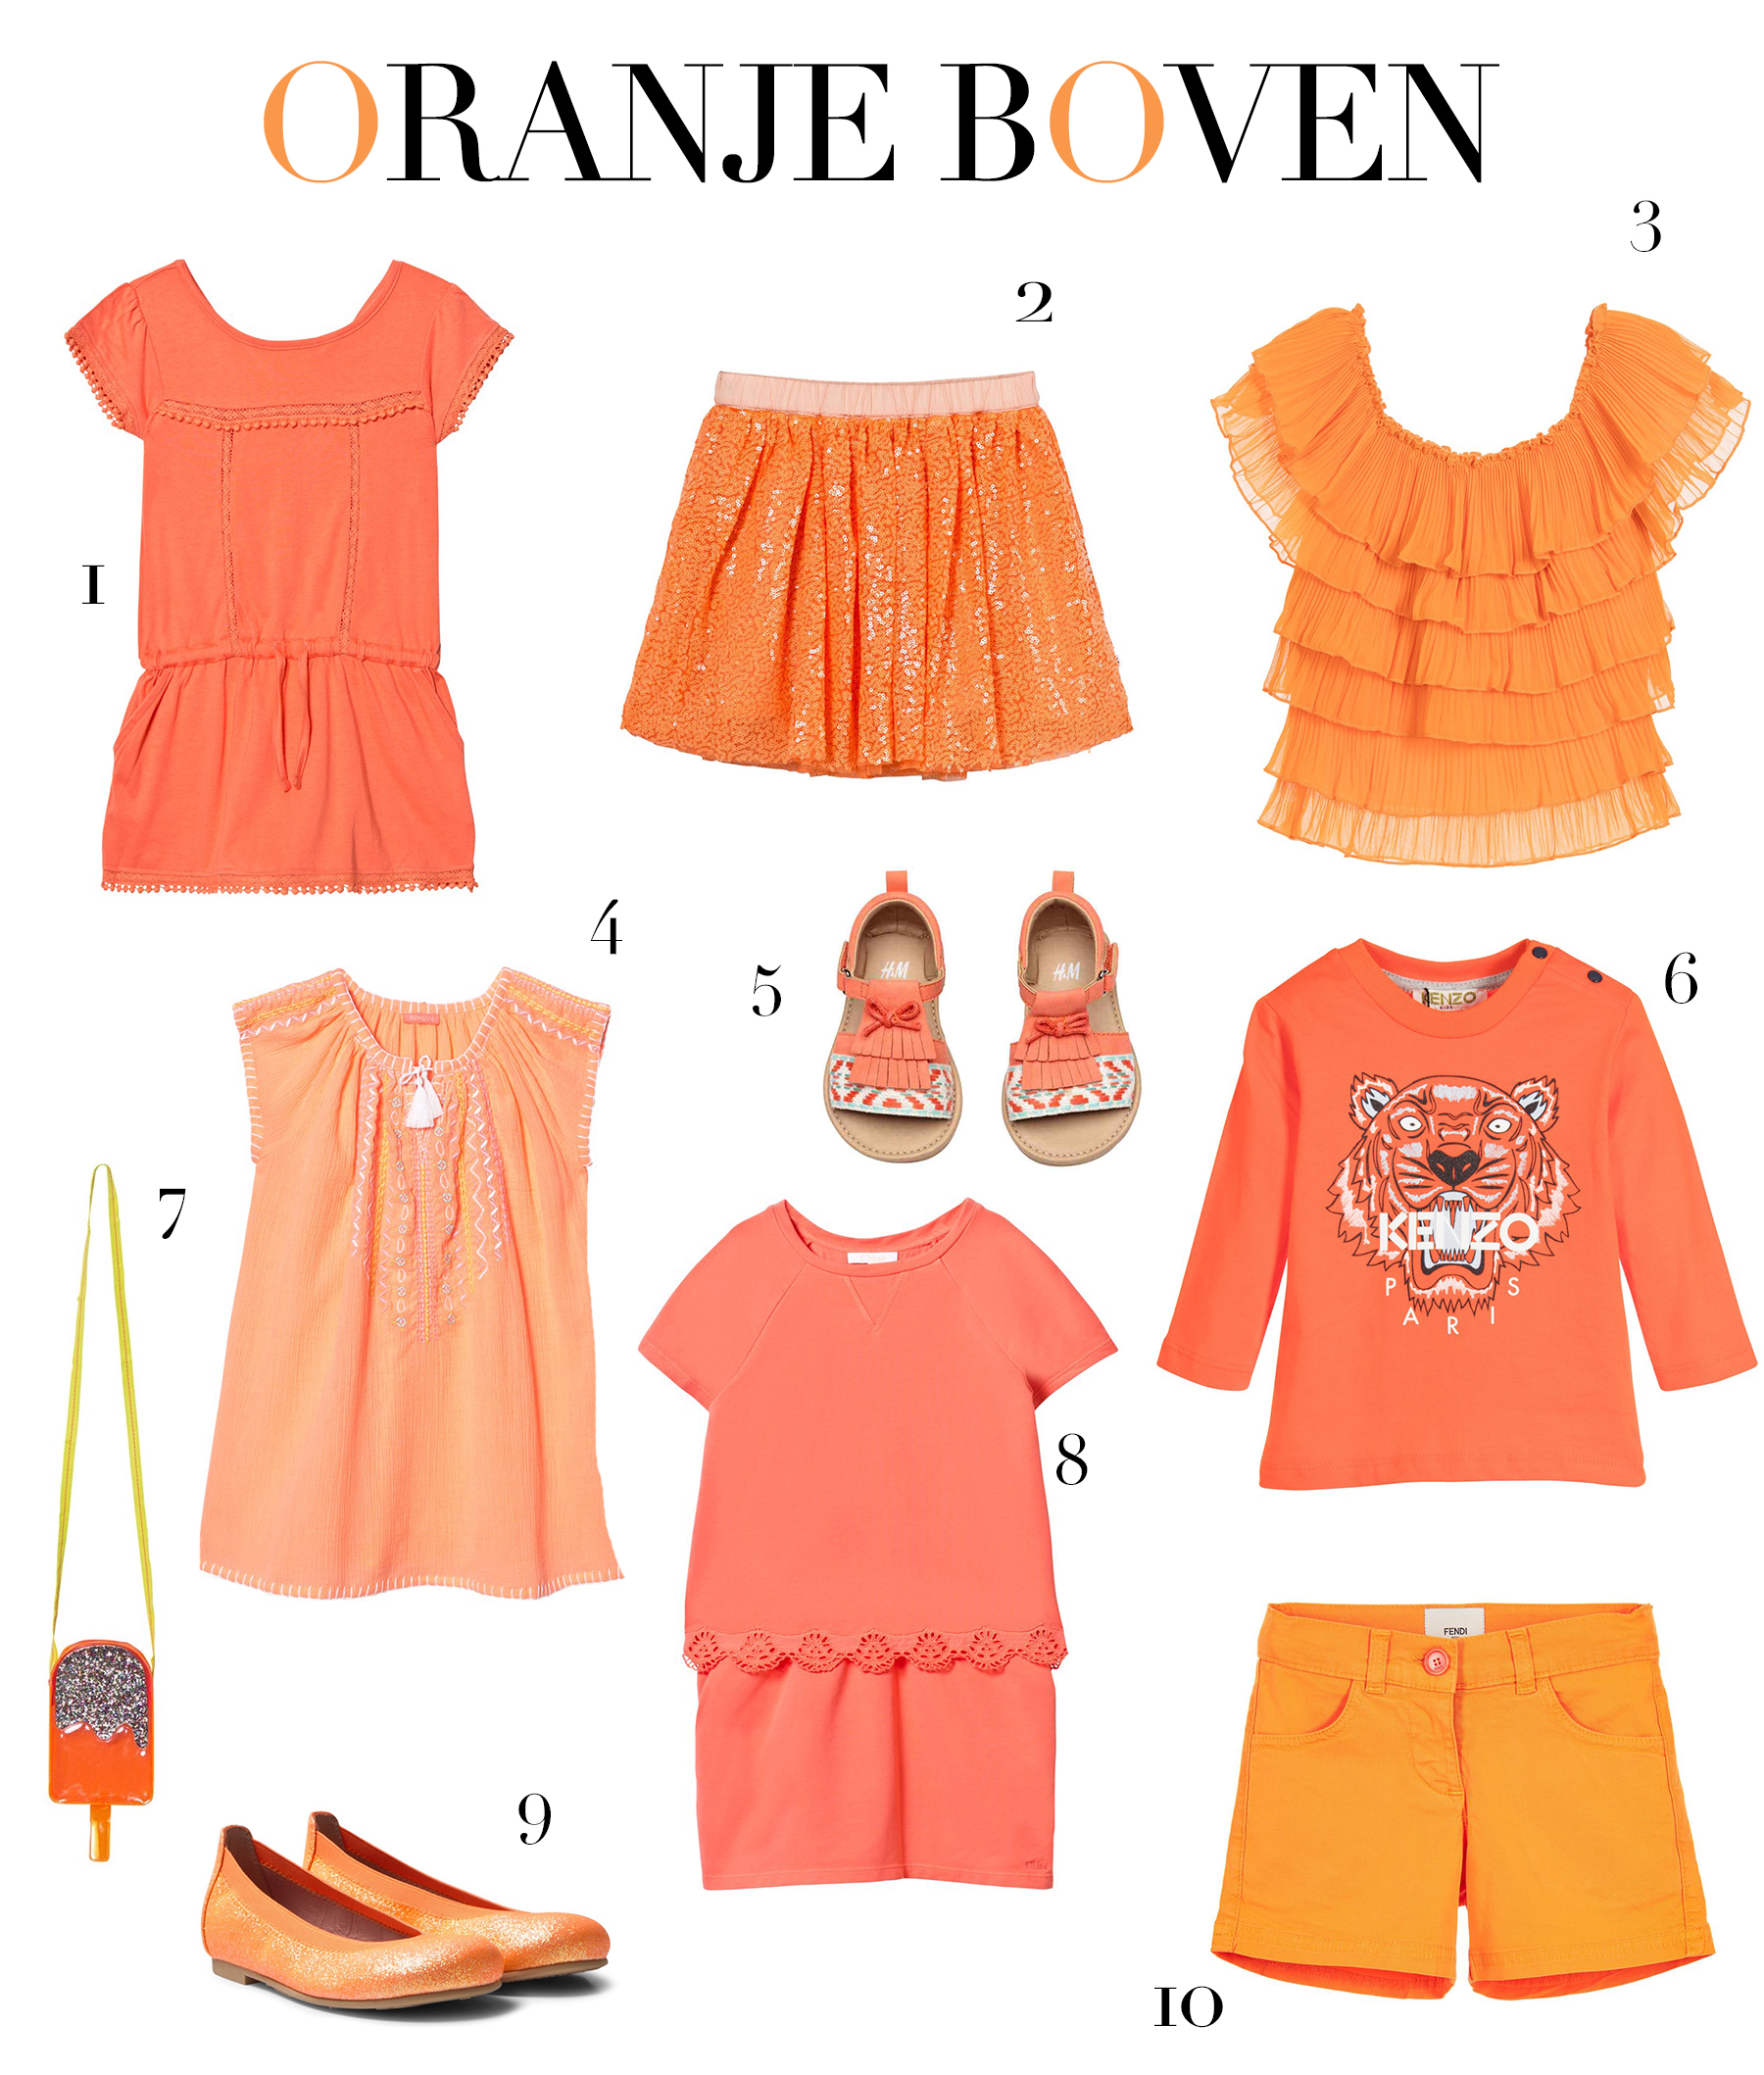 oranje-boven-koningsdag-shopping-kids-meisjes-the-mom